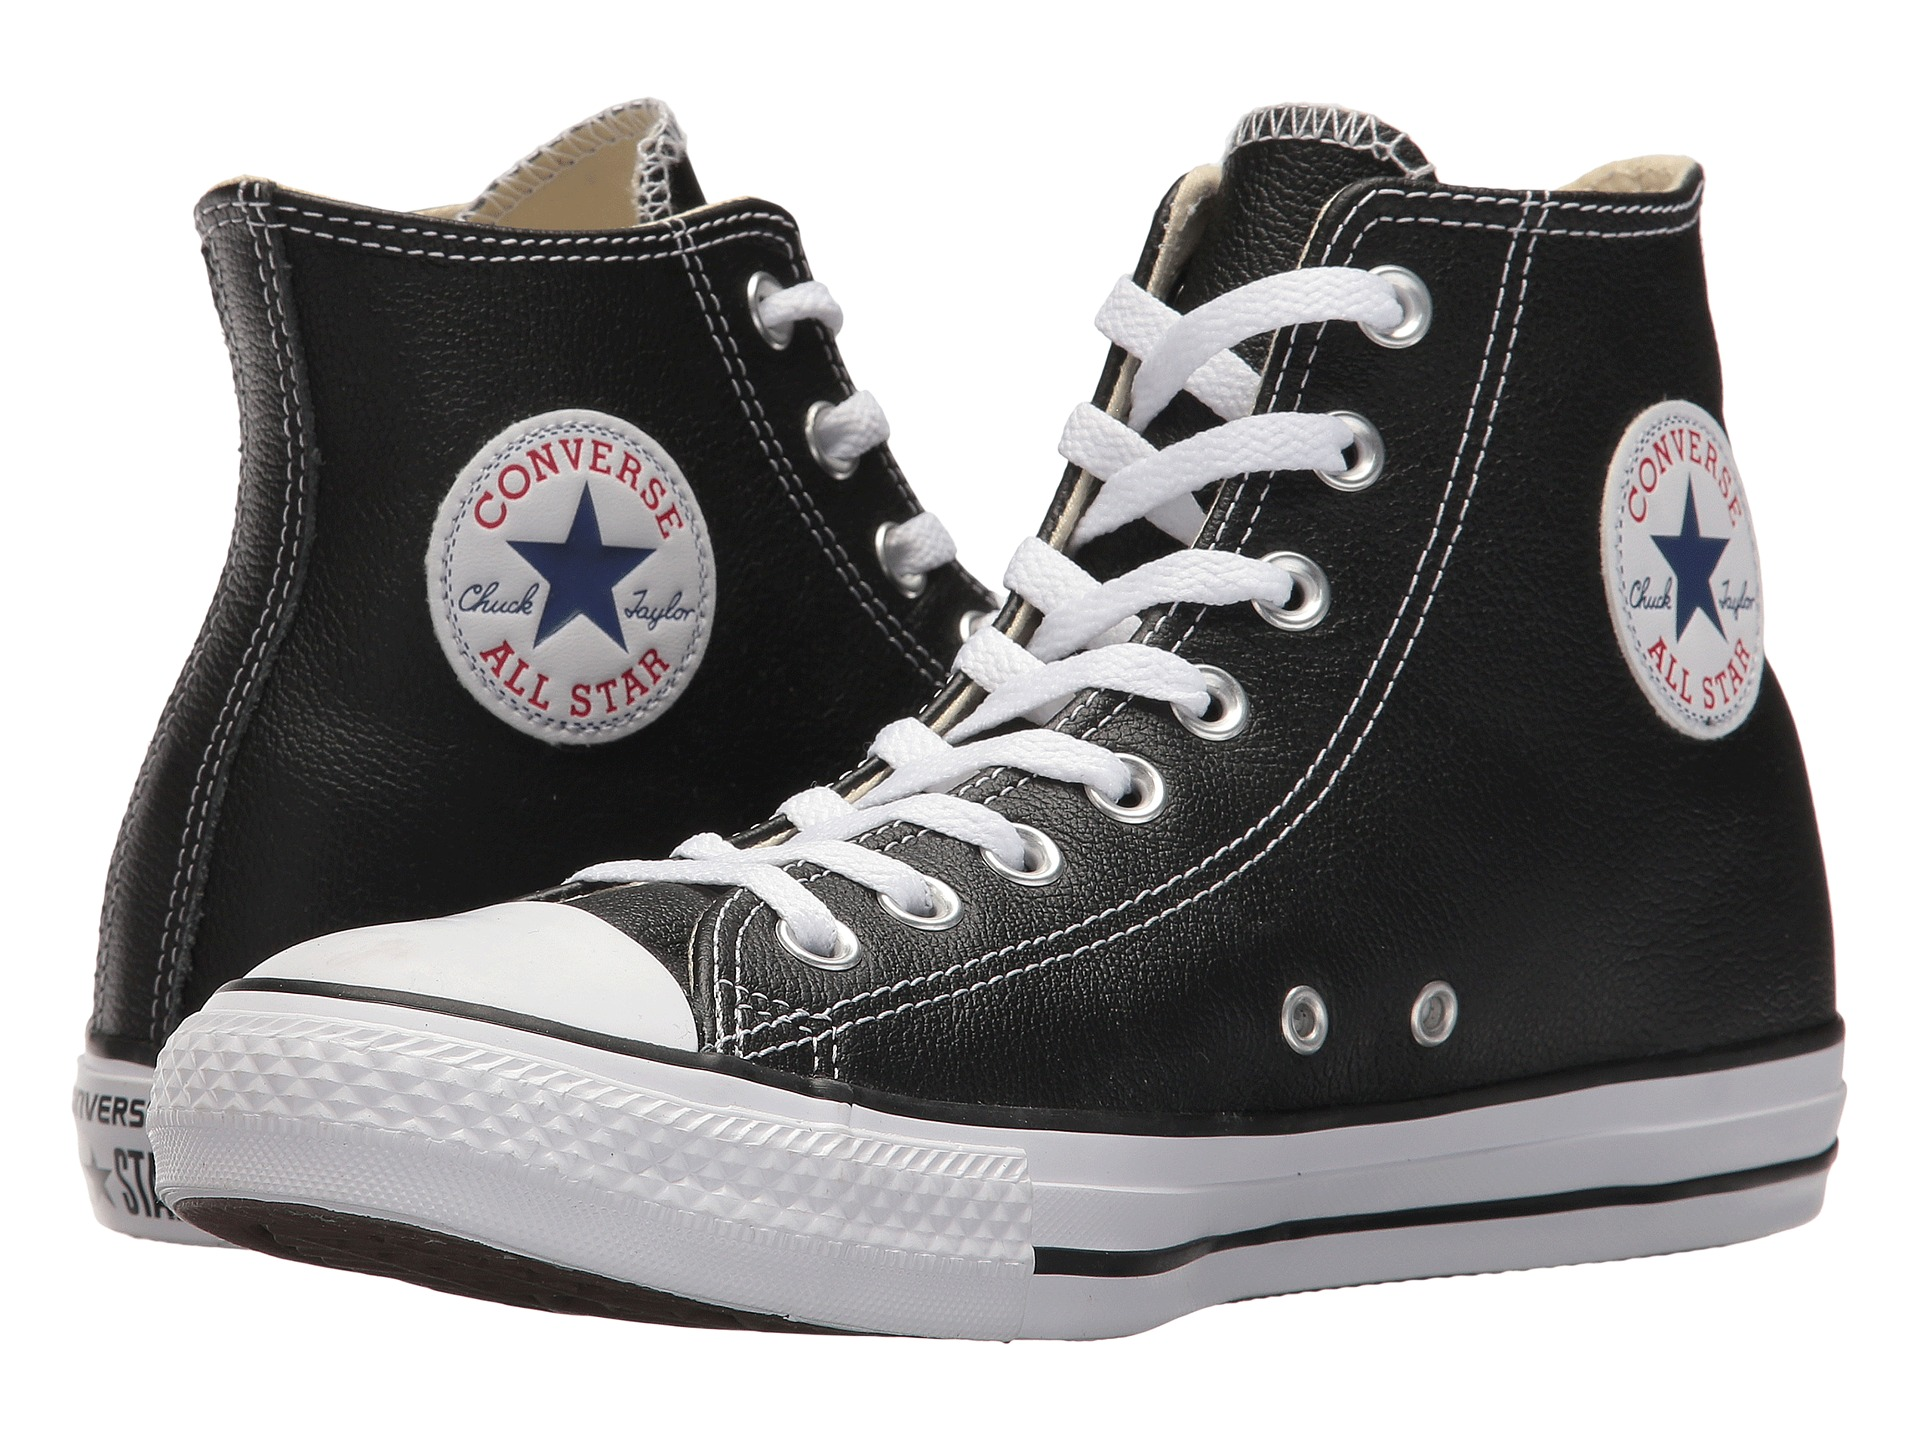 Converse High Top Shoe Laces